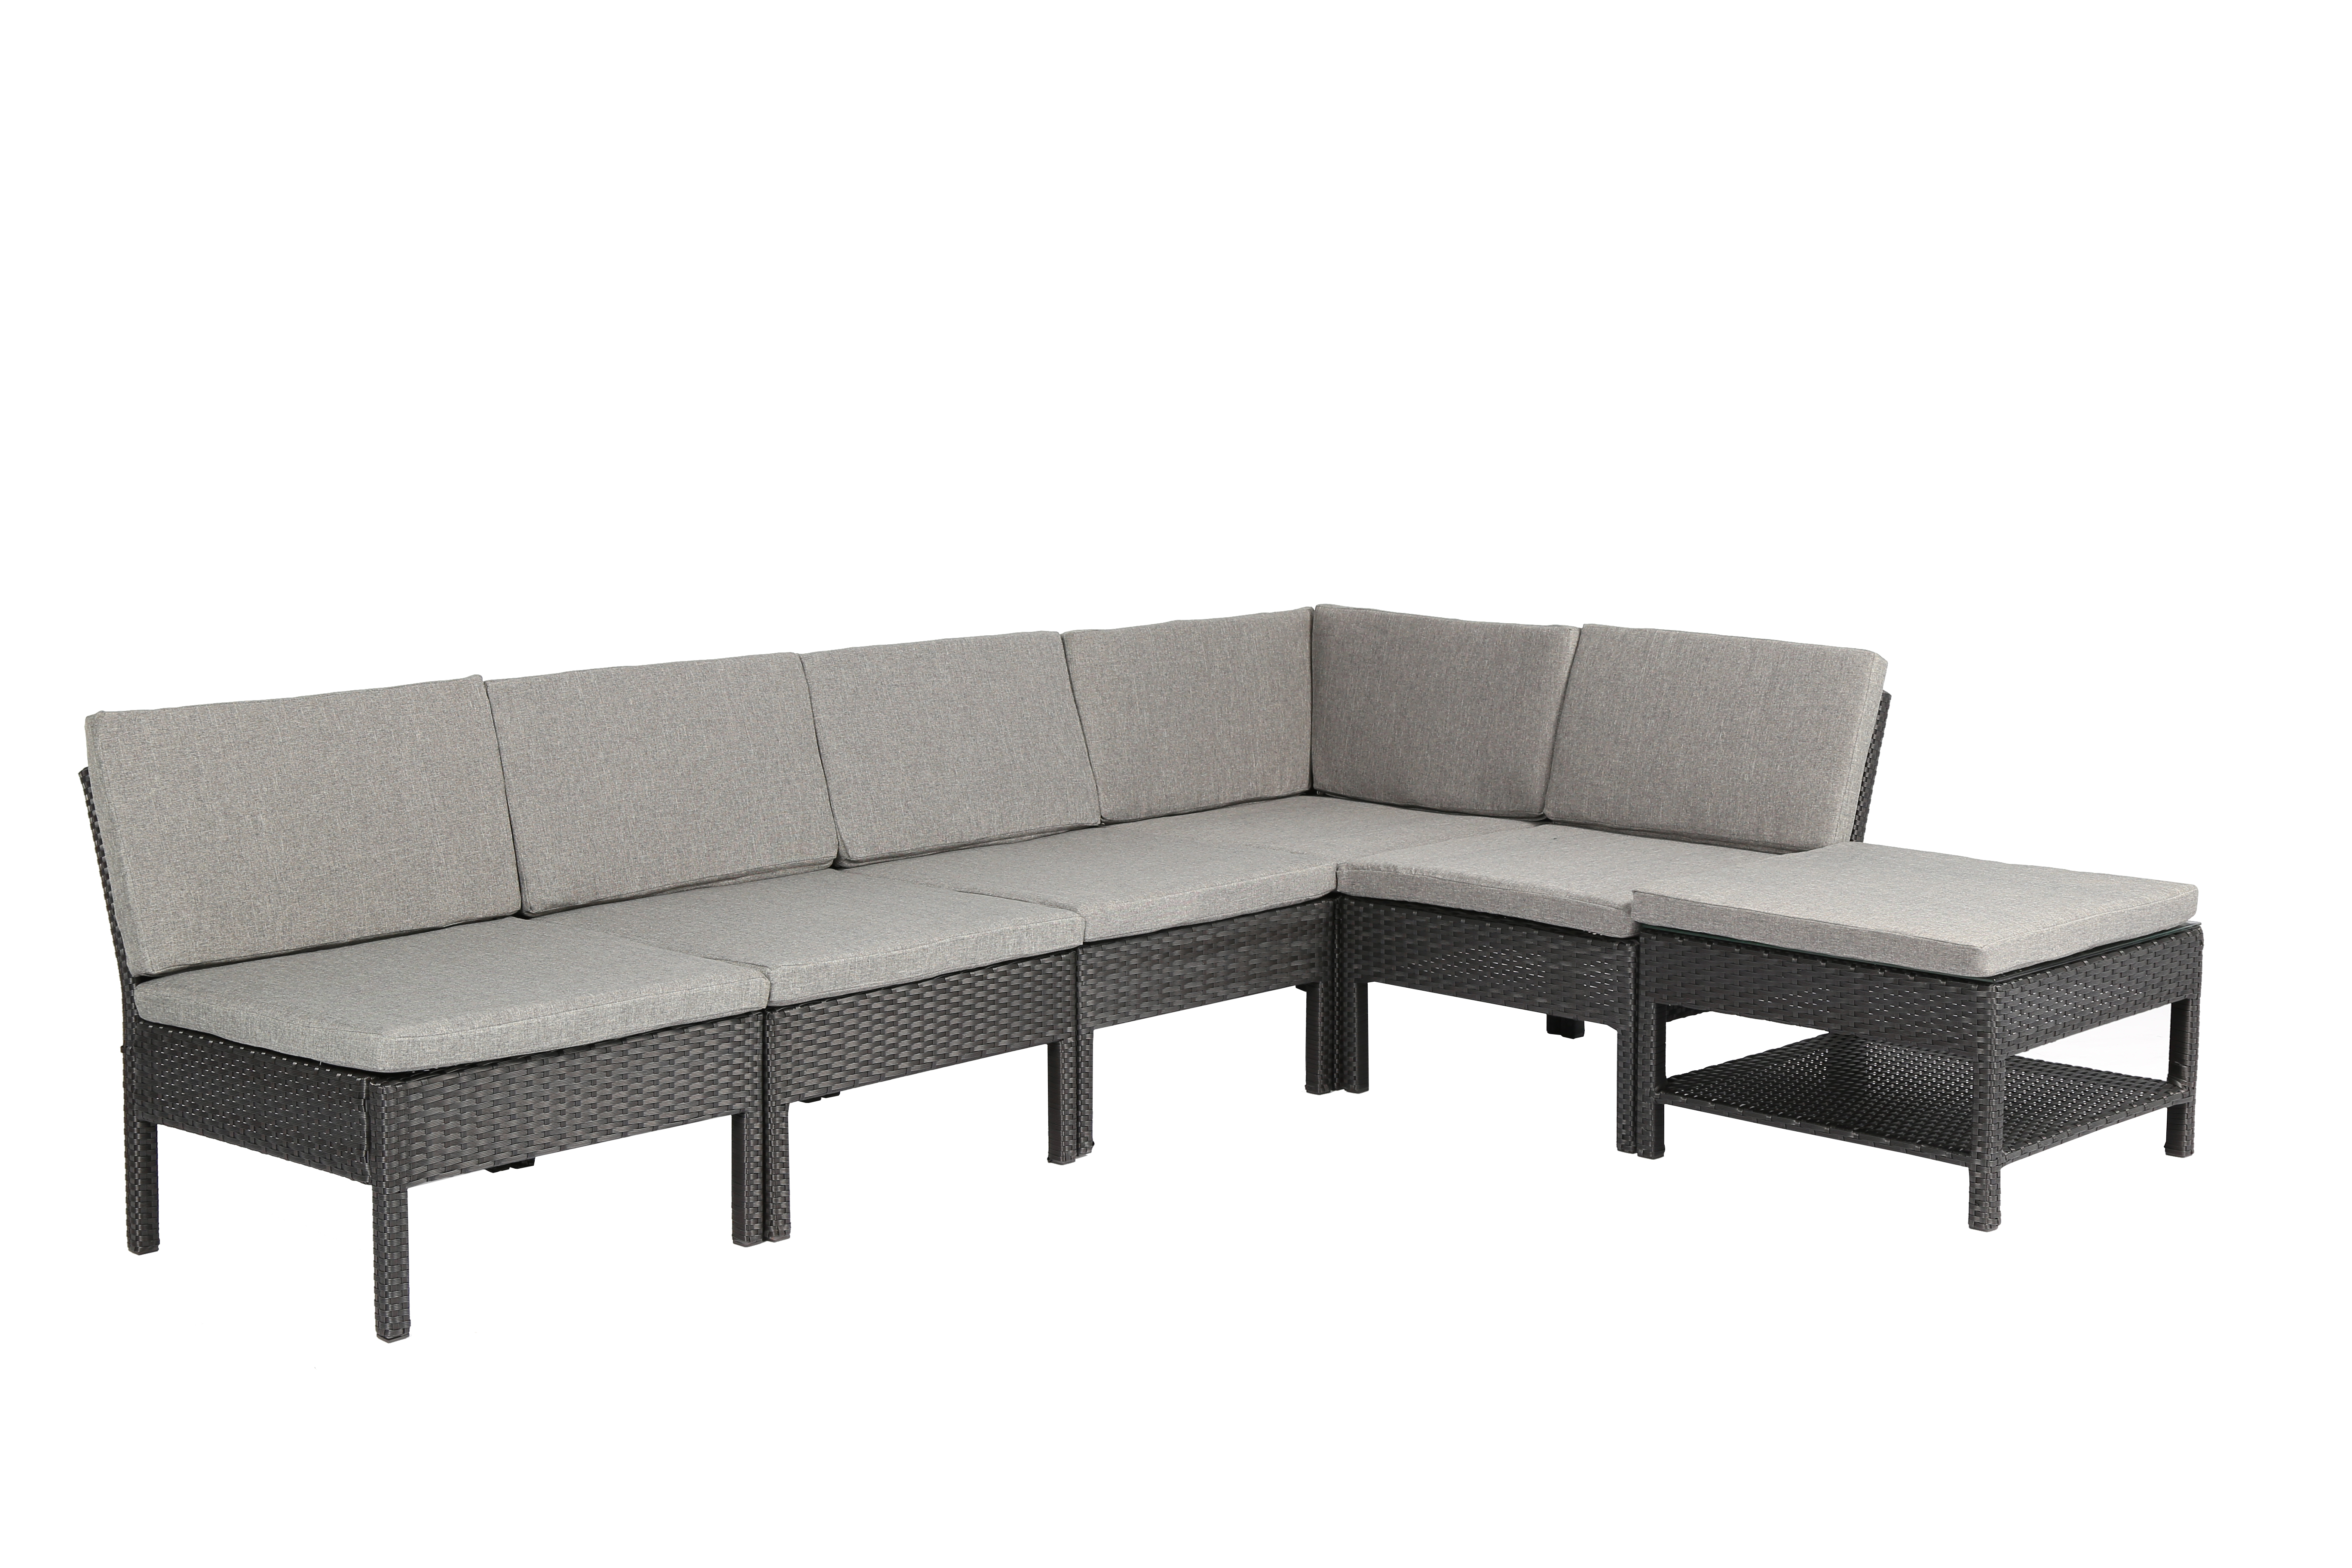 Magari Spiaggia Couch Sectional Sofa Set 6 Pieces – Notochord Group